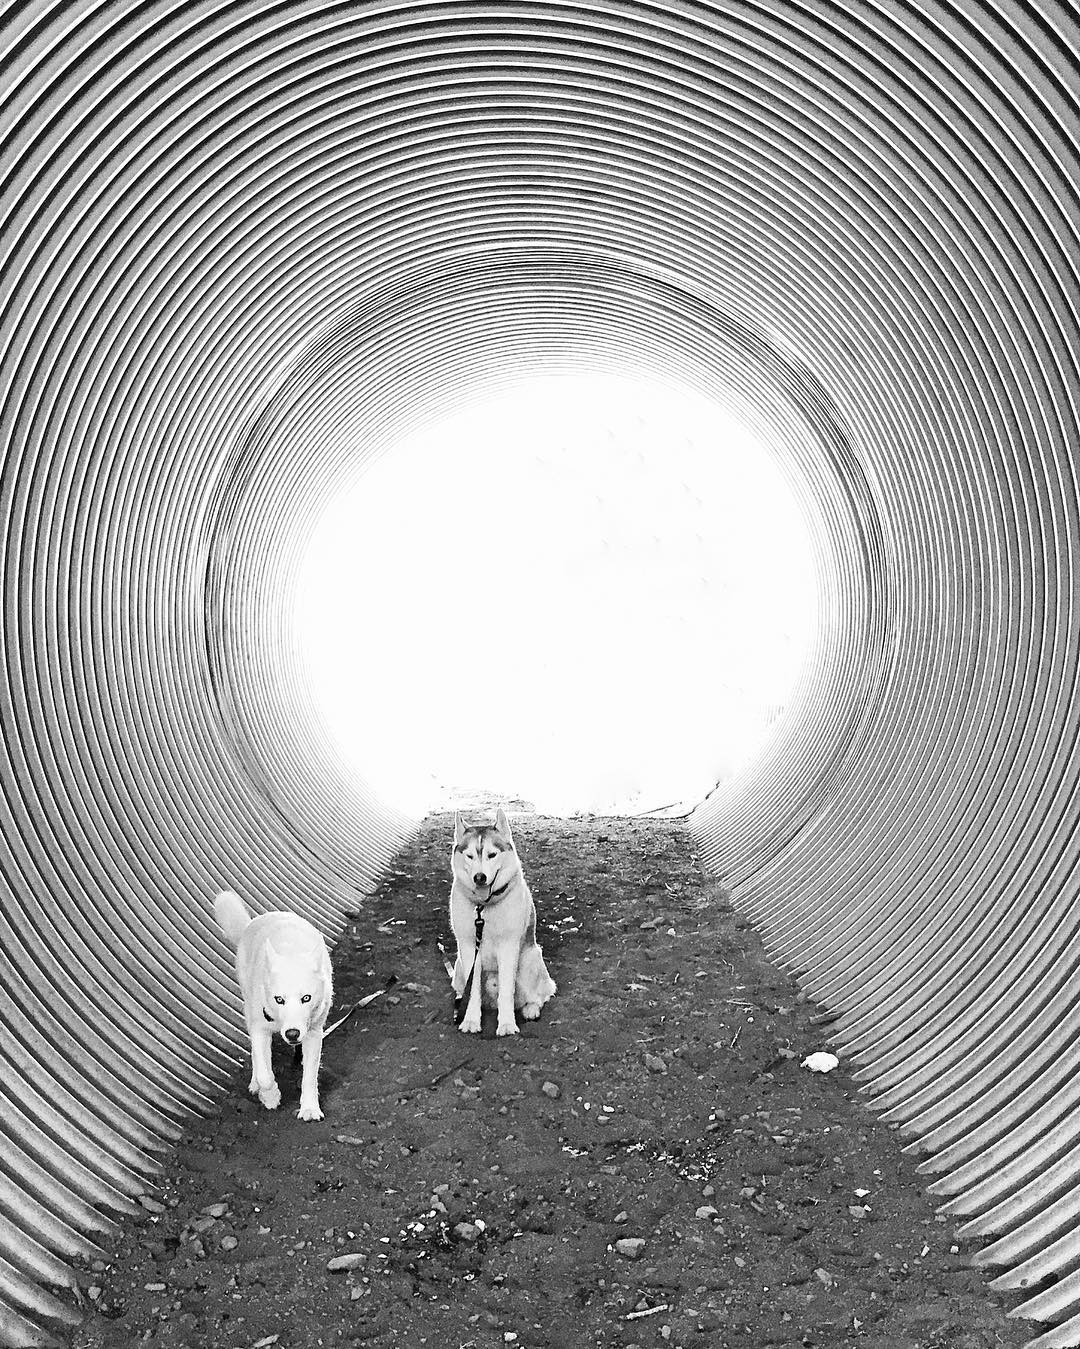 The tunnel vision is strong with these two. #Artsyfartsy shot from our hike today. #ParkCity #YukiTheDestroyer #BentleyChickenFingersBlock